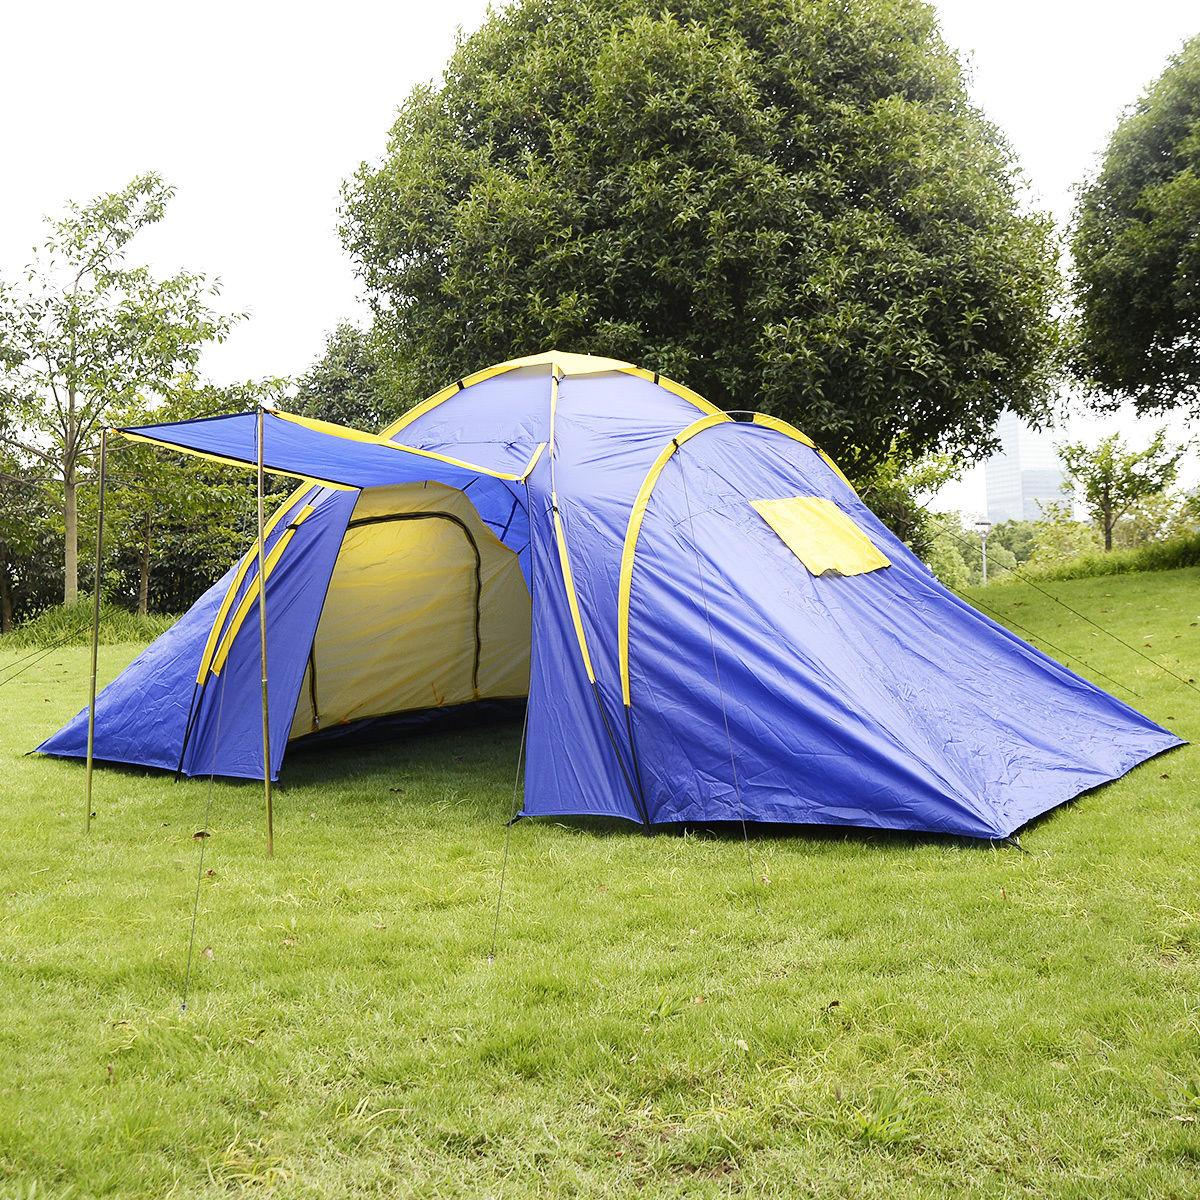 GOPLUS 4-5 Person / Waterproof Camp 2 + 1 Room Hiking Camping Tenda familiare